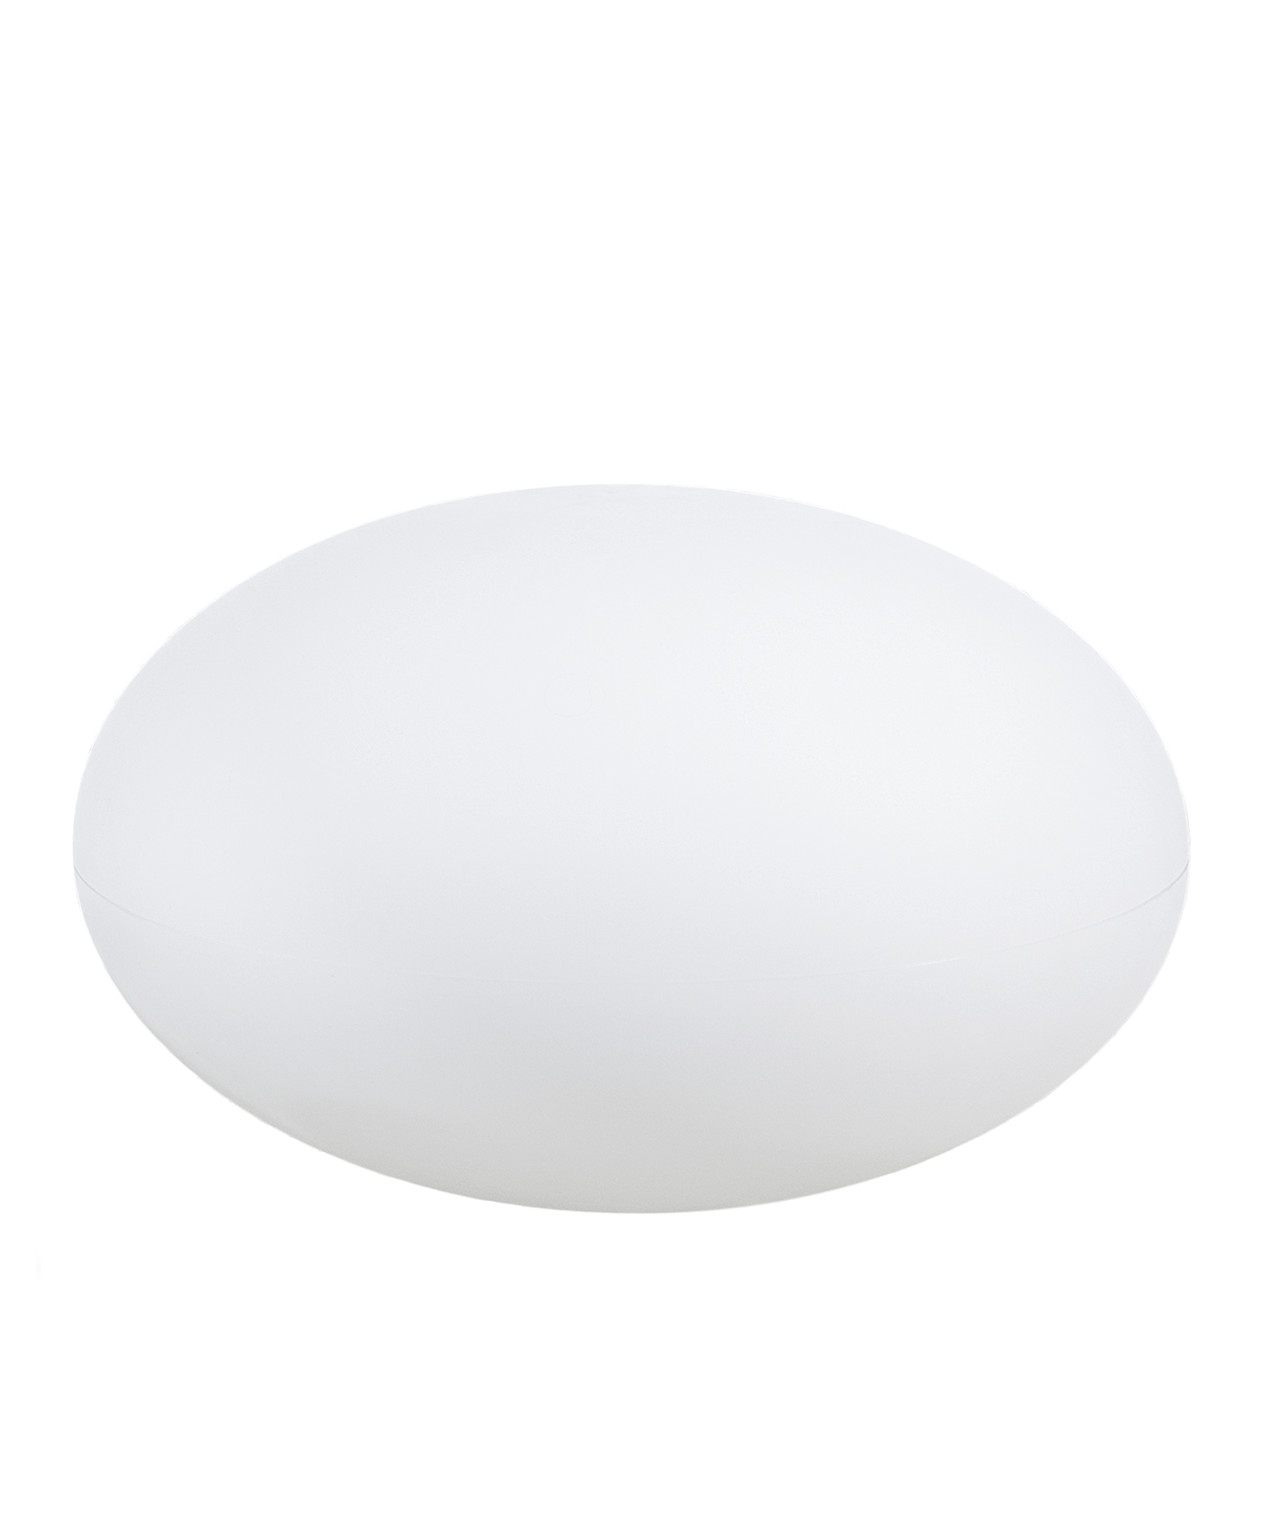 Eggy pop udendørslampe medium ø55